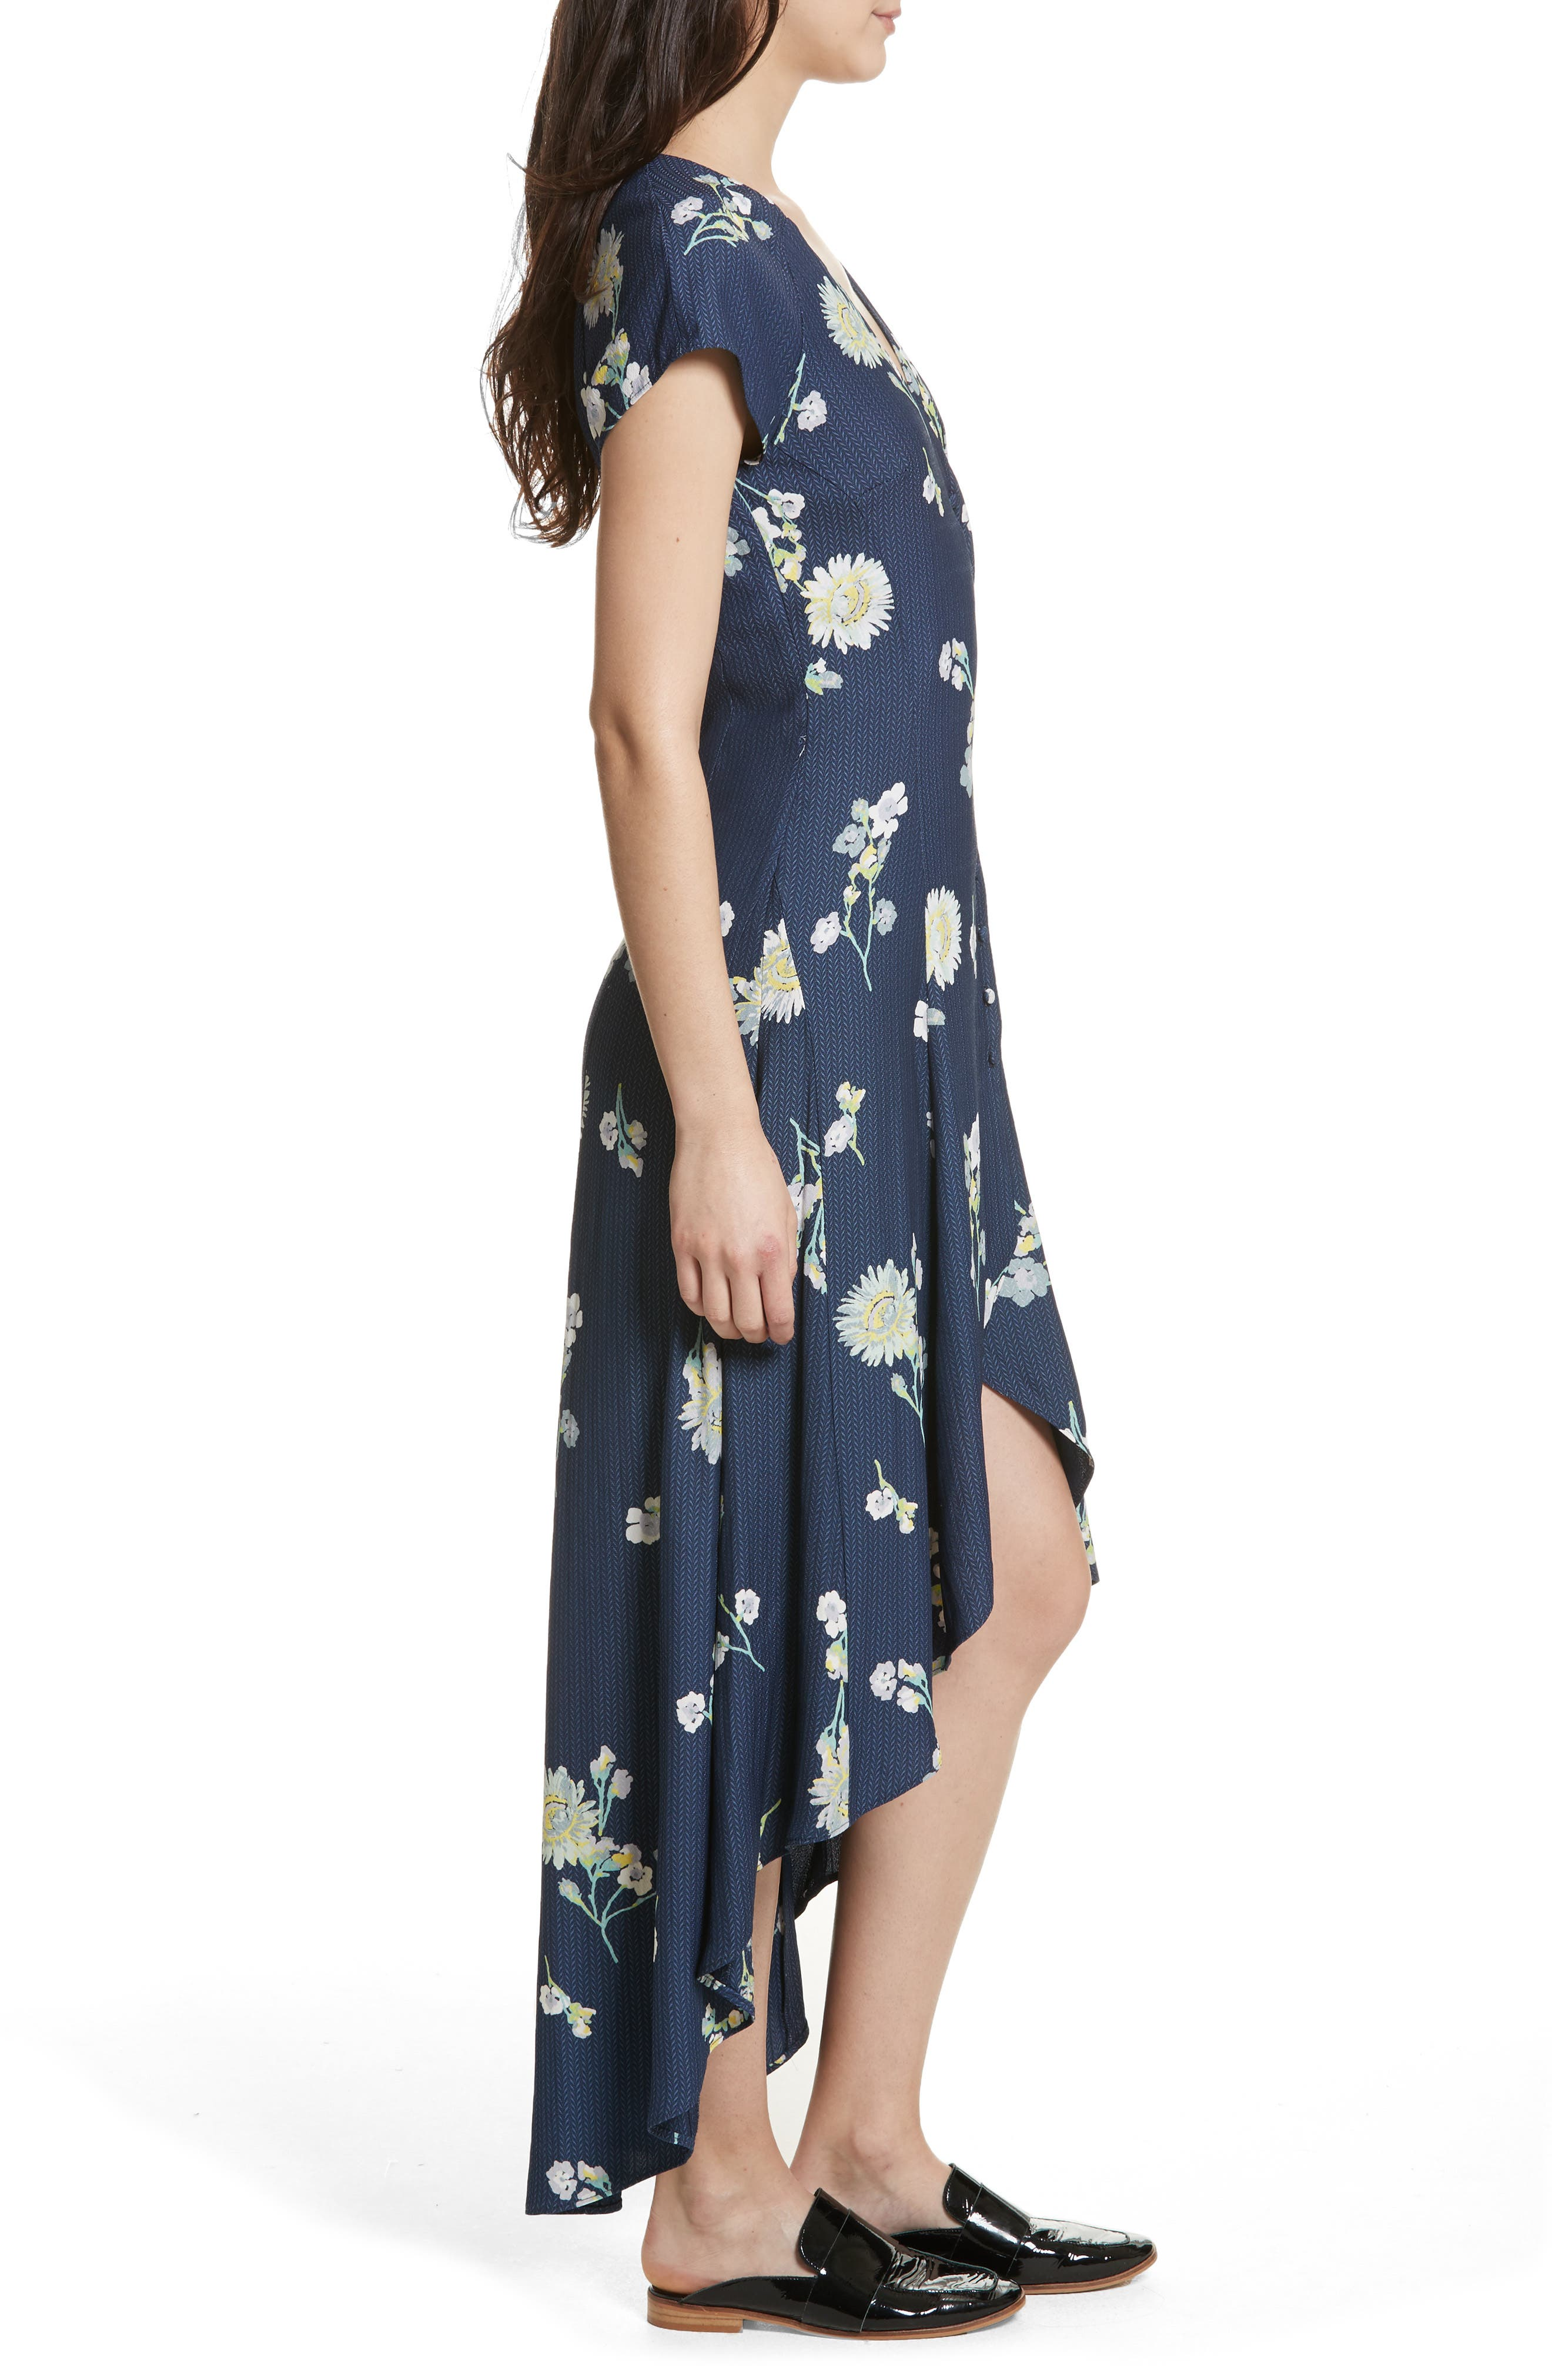 Lost in You Midi Dress,                             Alternate thumbnail 3, color,                             Blue Combo